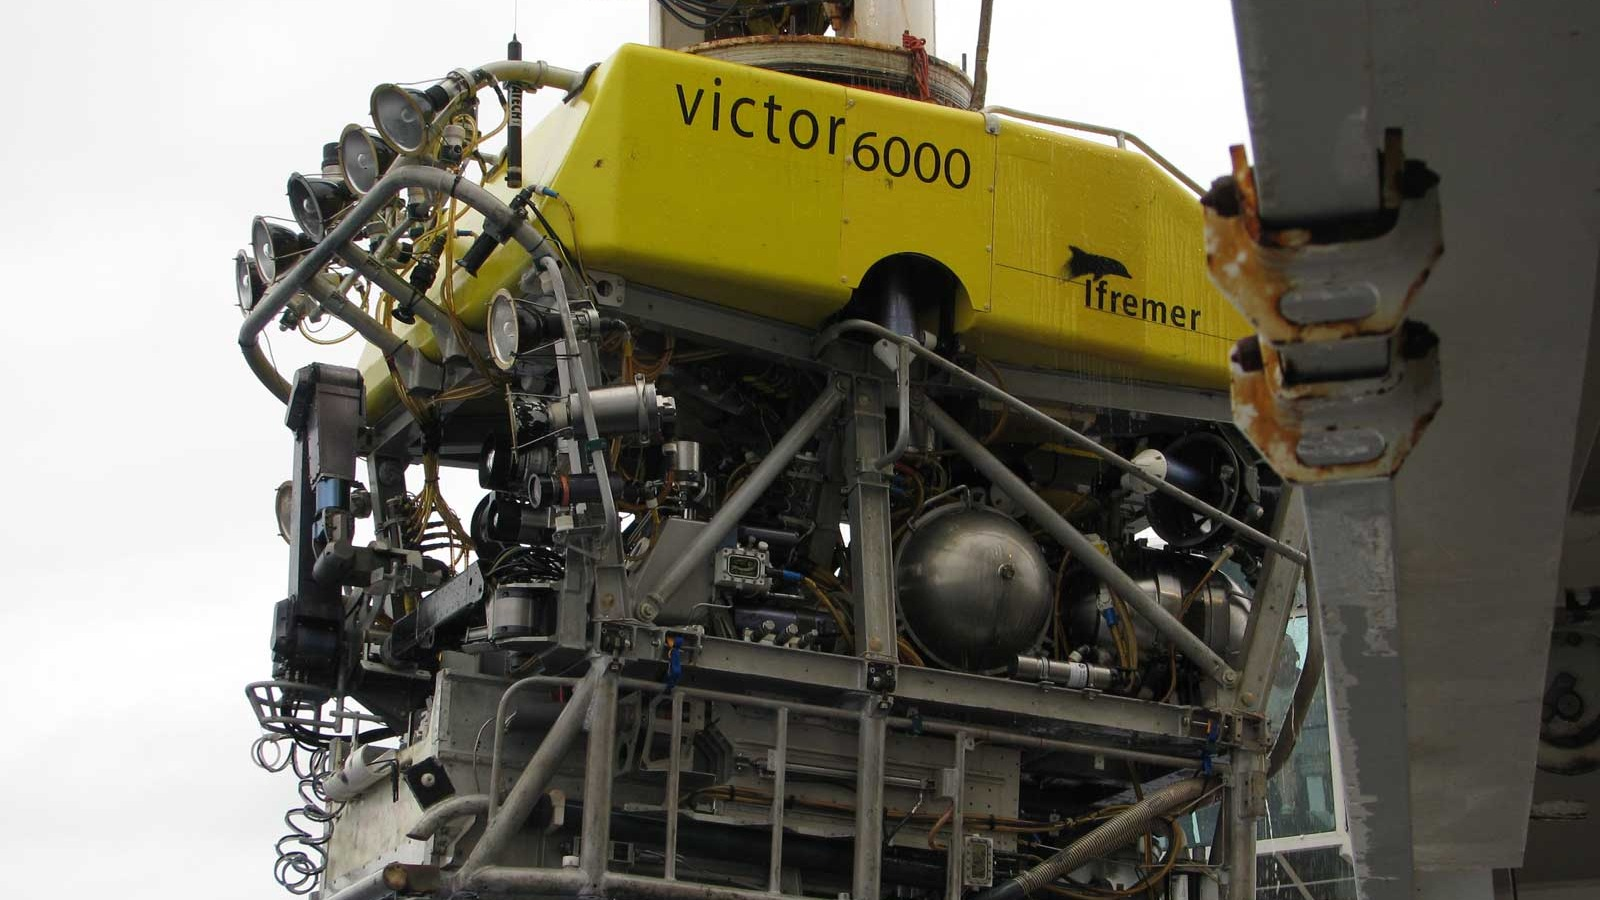 The-Victor-6000-ROV